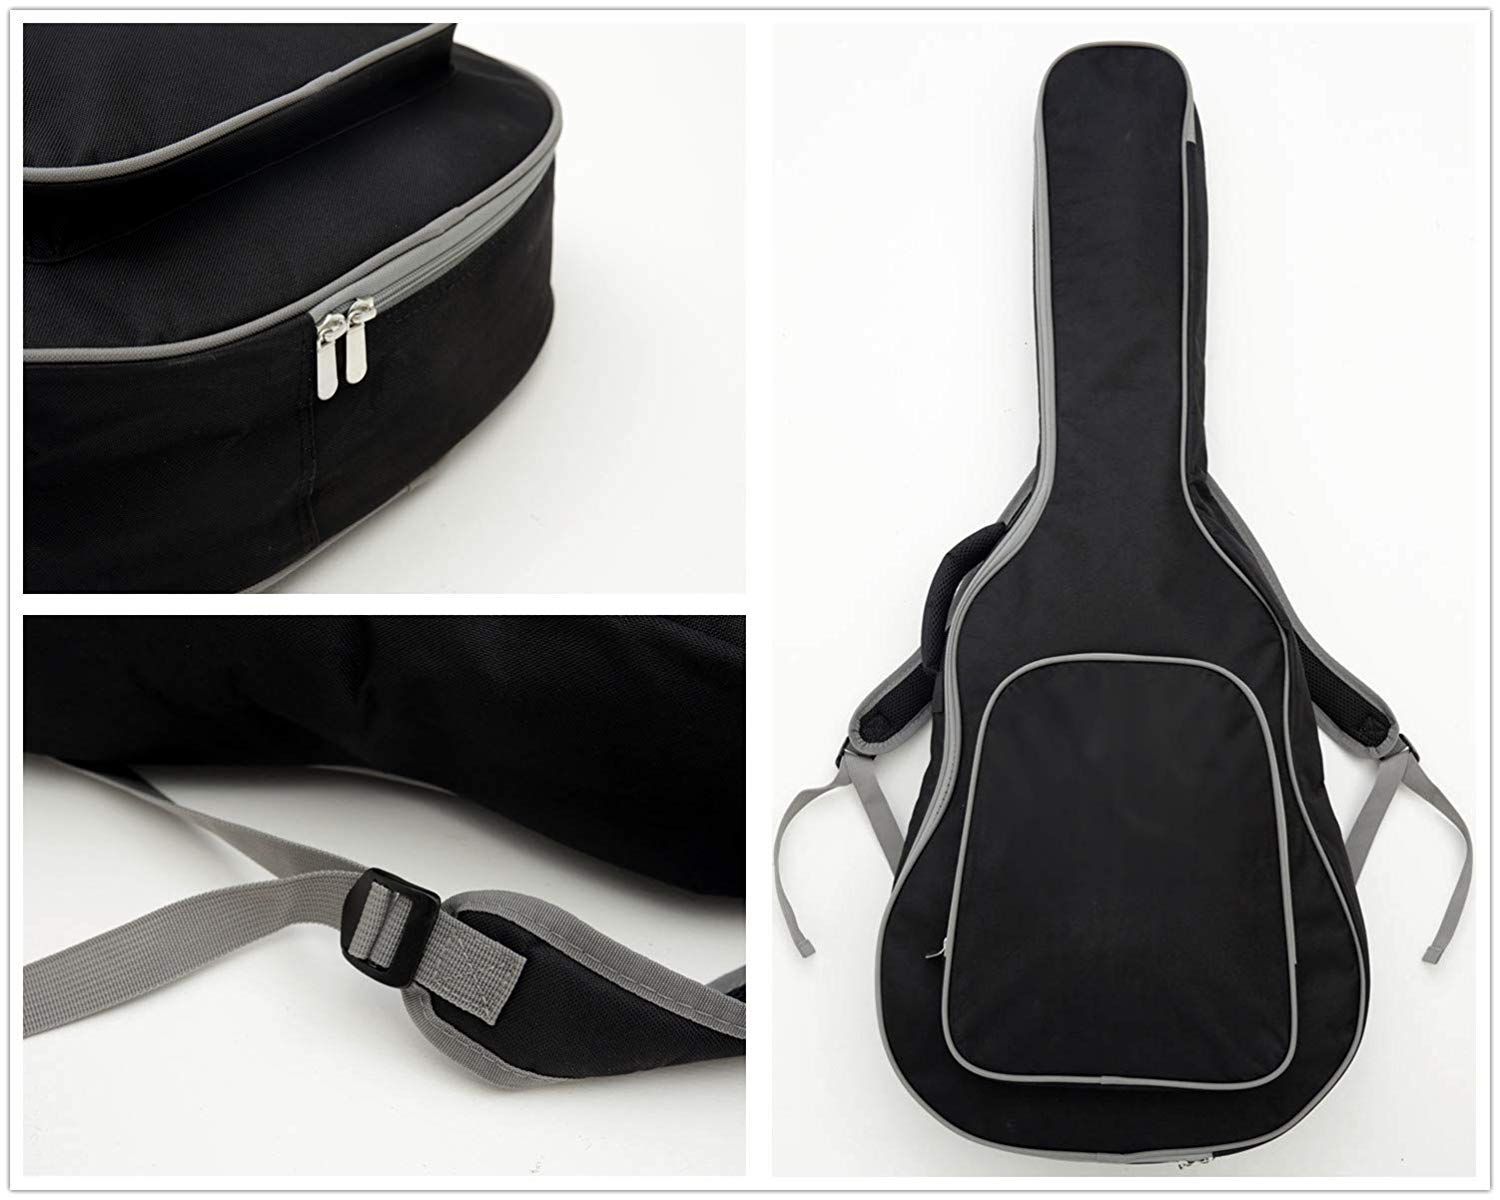 Multiple Views of the Guitar Bag that comes with the Guitar Ranch Full Size Cutaway Dreadnought Acoustic Guitar